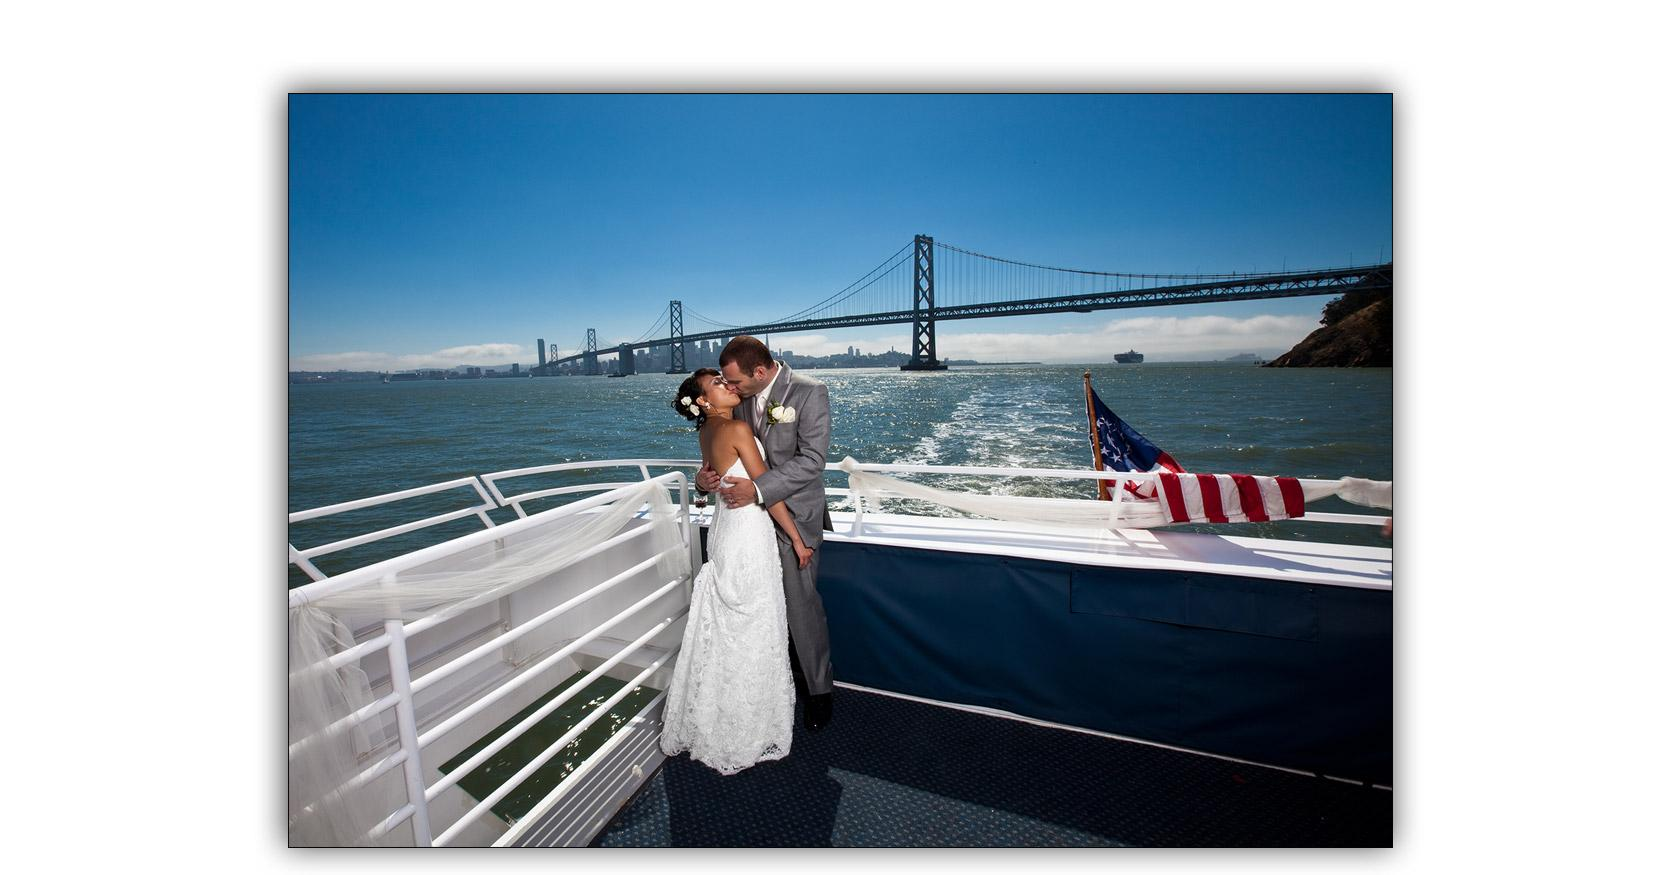 San Francisco Bay yacht boat wedding cruise Commodore Events Merlot photography album 09